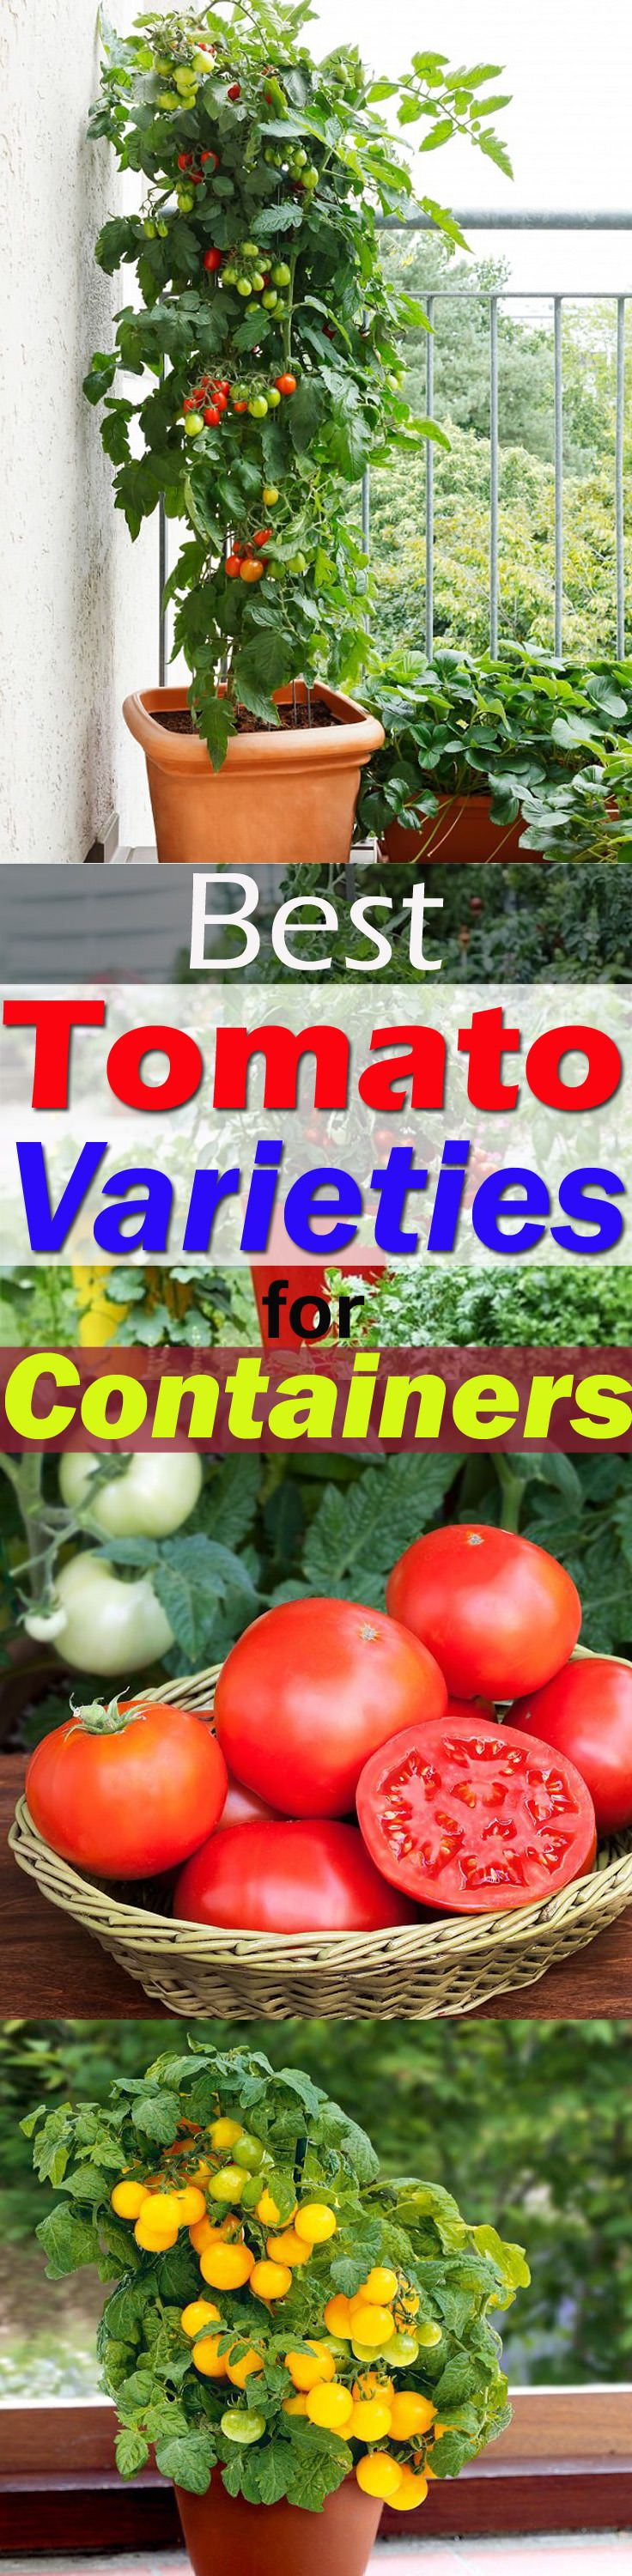 25 best ideas about tomato plants on pinterest tomato for Ideas for tomatoes from the garden